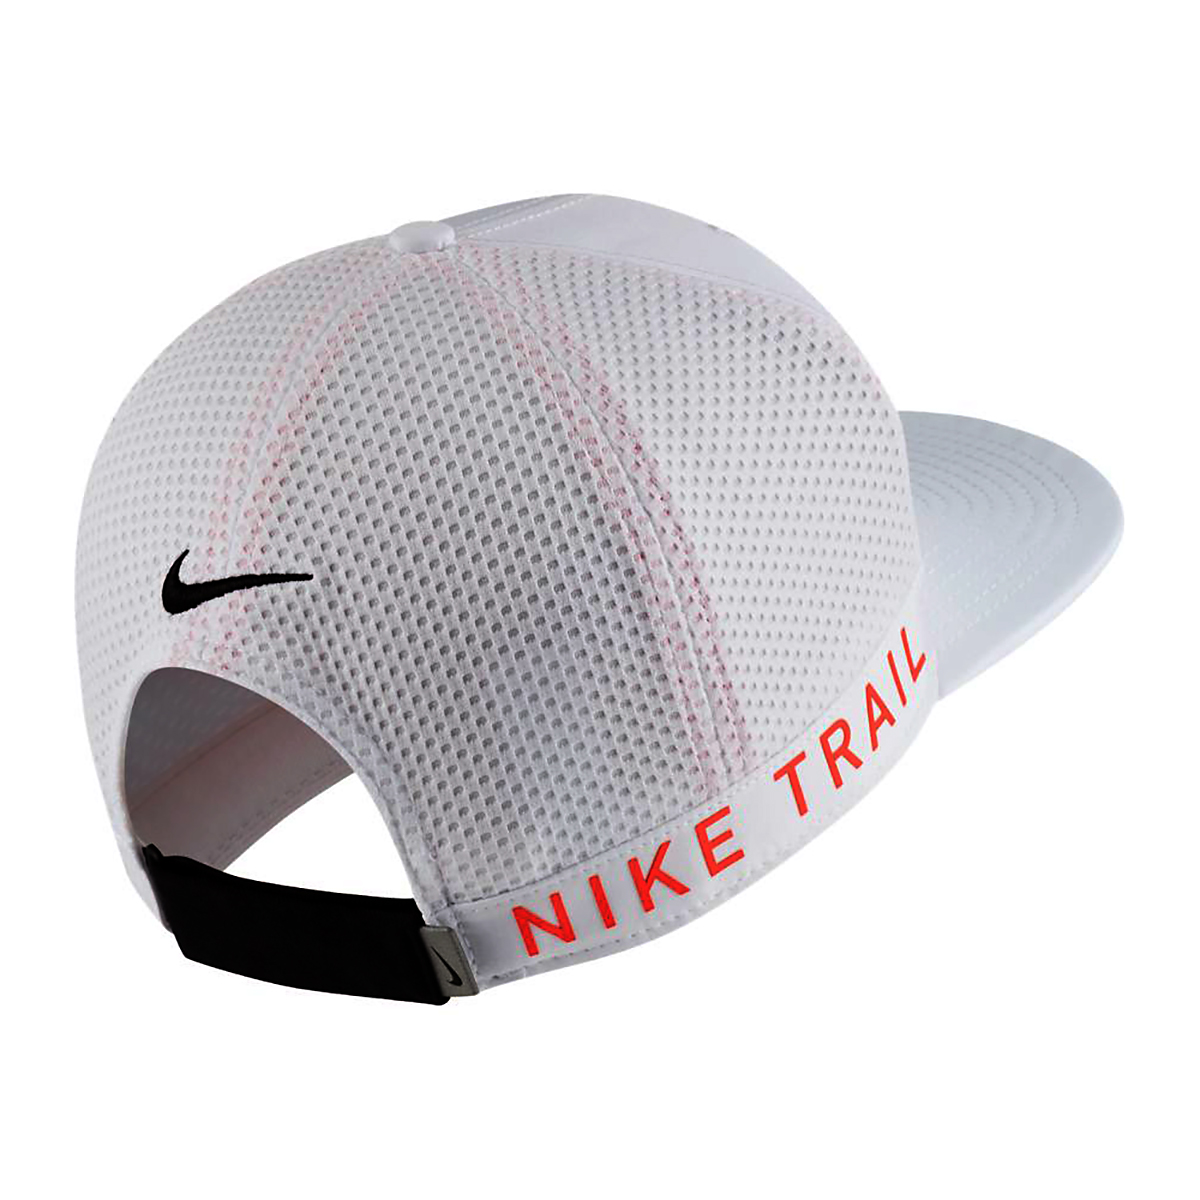 Nike Dry Pro Cao Trail  - Color: White, White, large, image 2